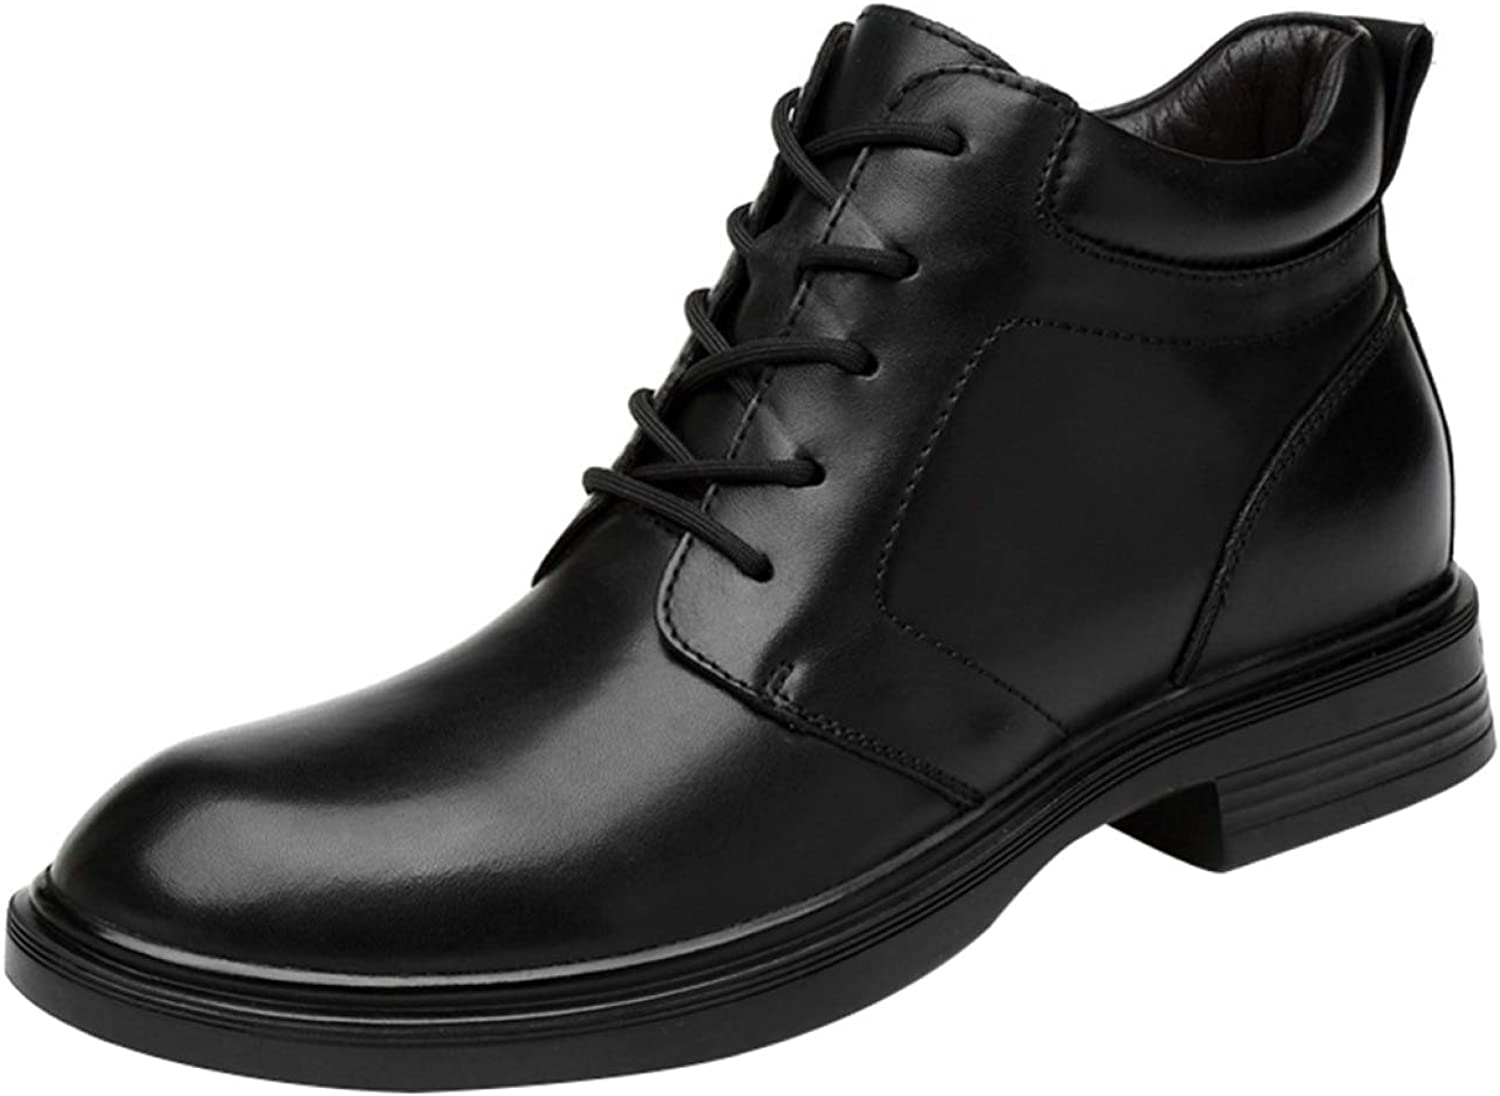 AILINSHA Boots Men's Lace Up Retro Derby Ankle Boots Casual Martin Boots Large Size Black